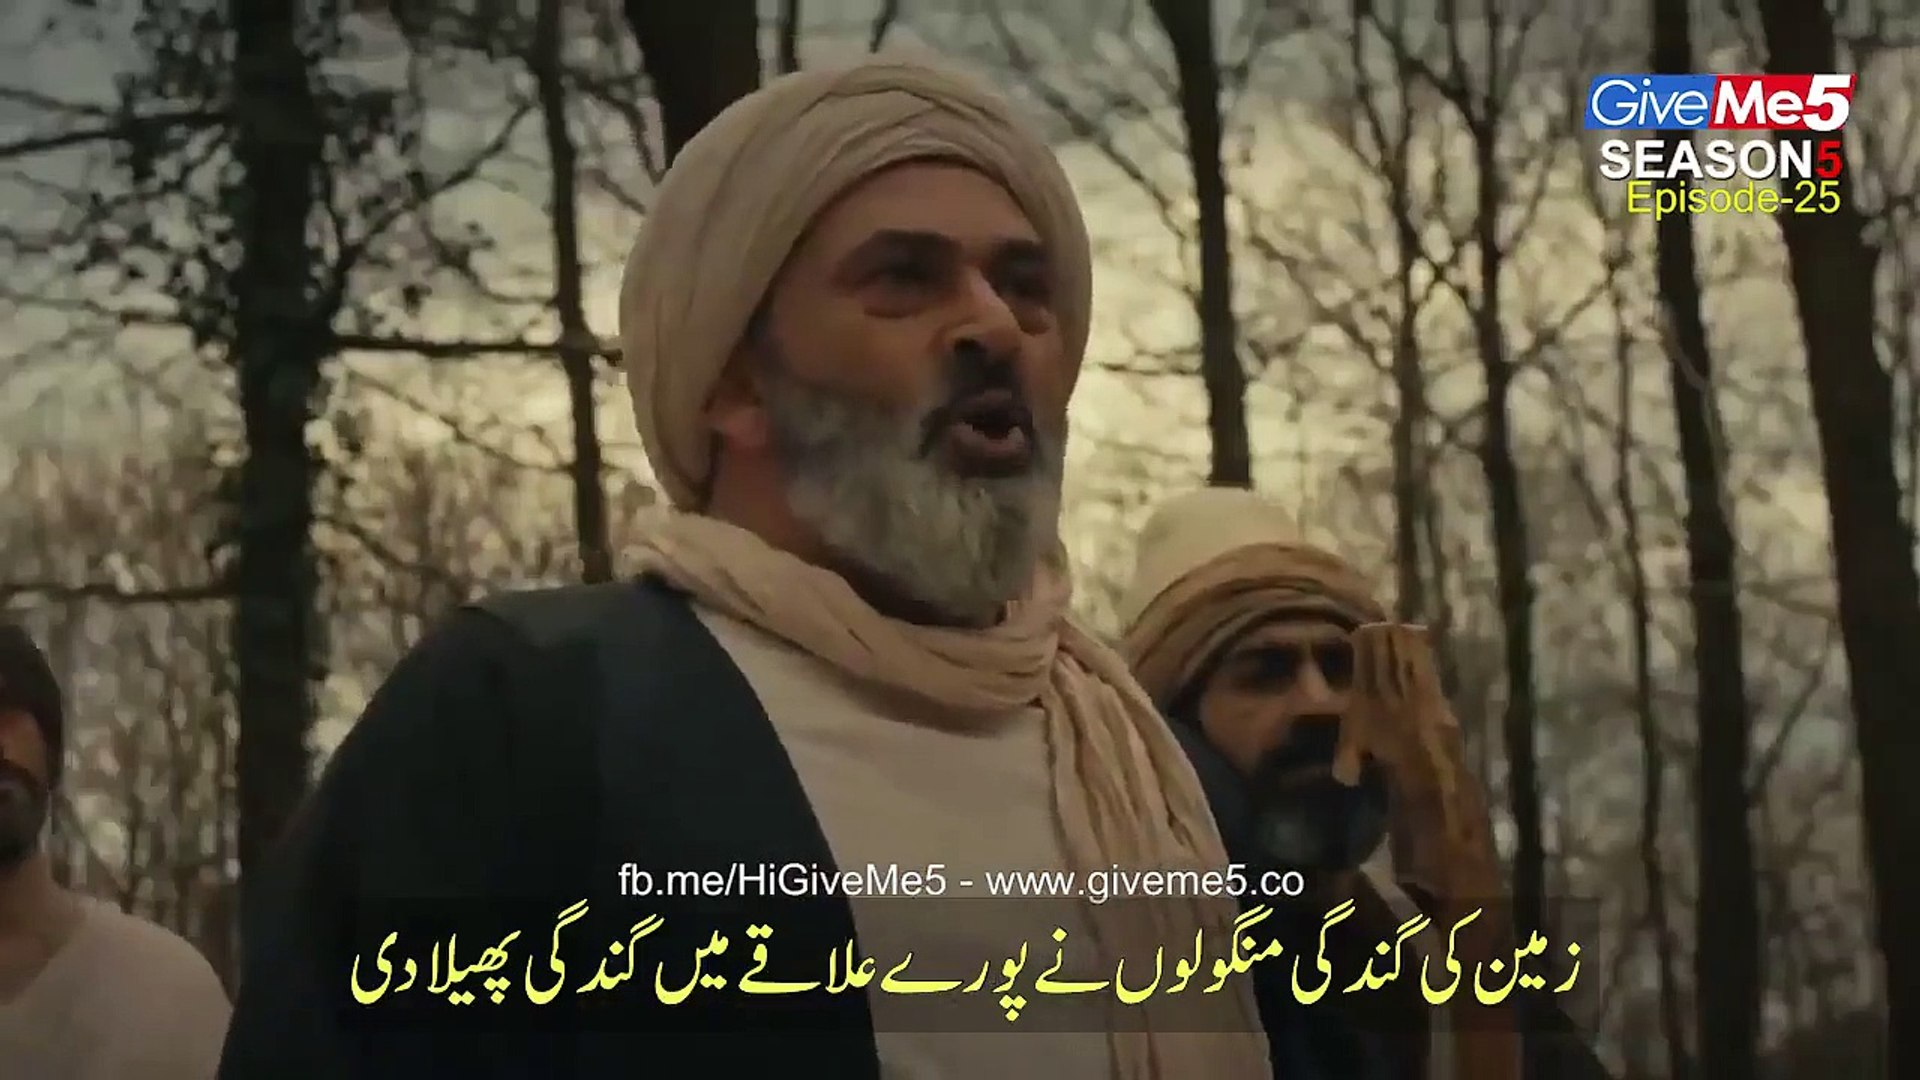 Dirilis Ertugrul Ghazi Season 5 in Urdu Subtitle Episode 25 & 26